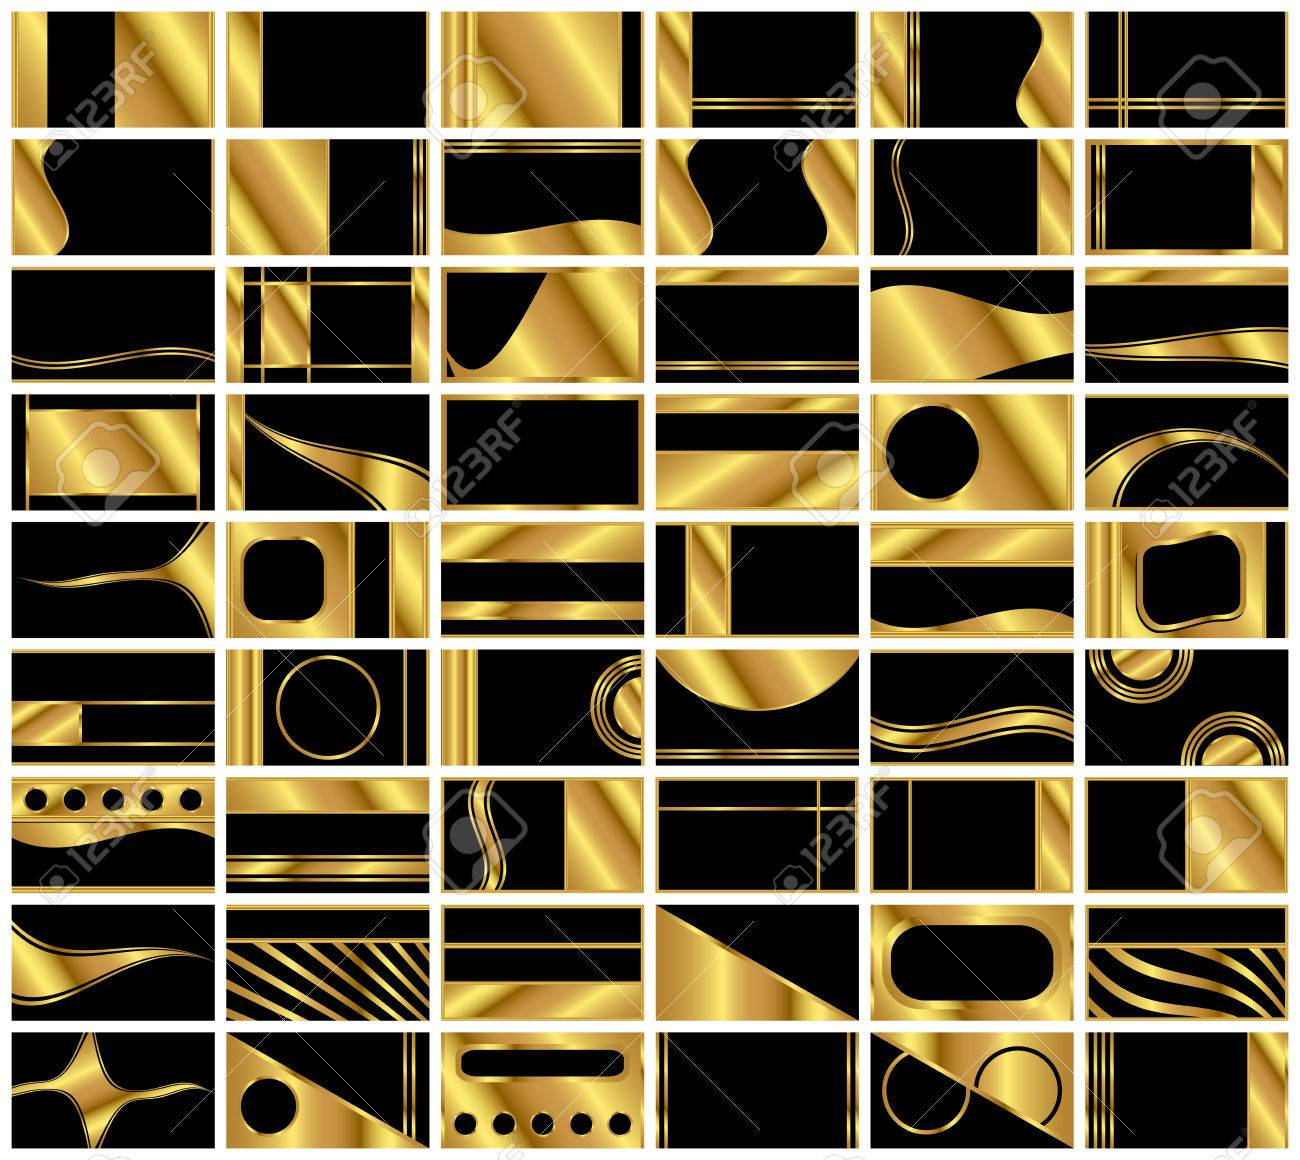 A collection of 54 very elegant business card backgrounds in black and gold. Formatted in standard business card 1.75 aspect ratio. - 8627065